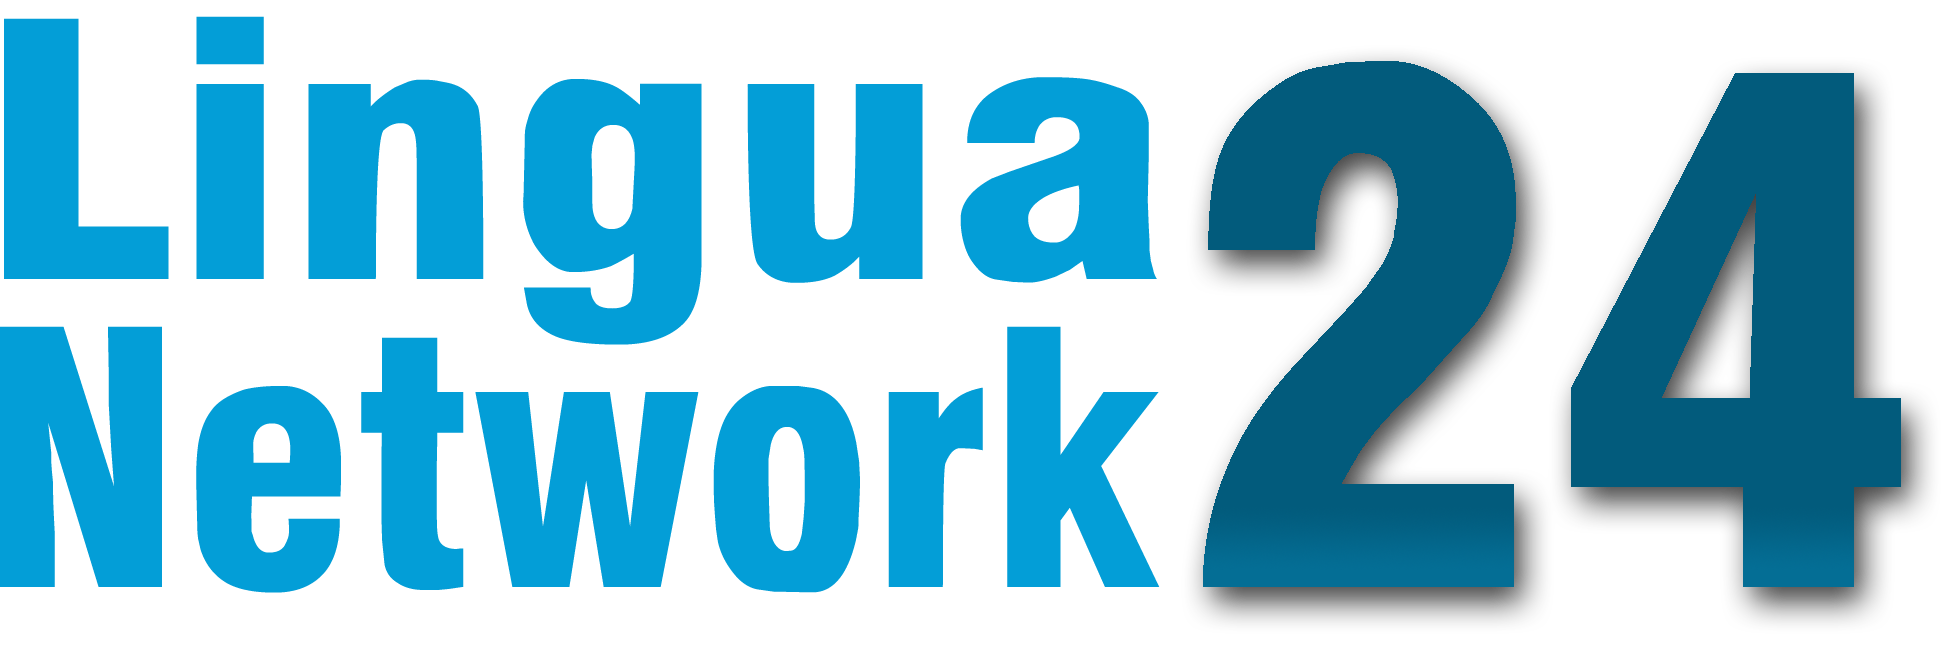 LinguaNetwork24